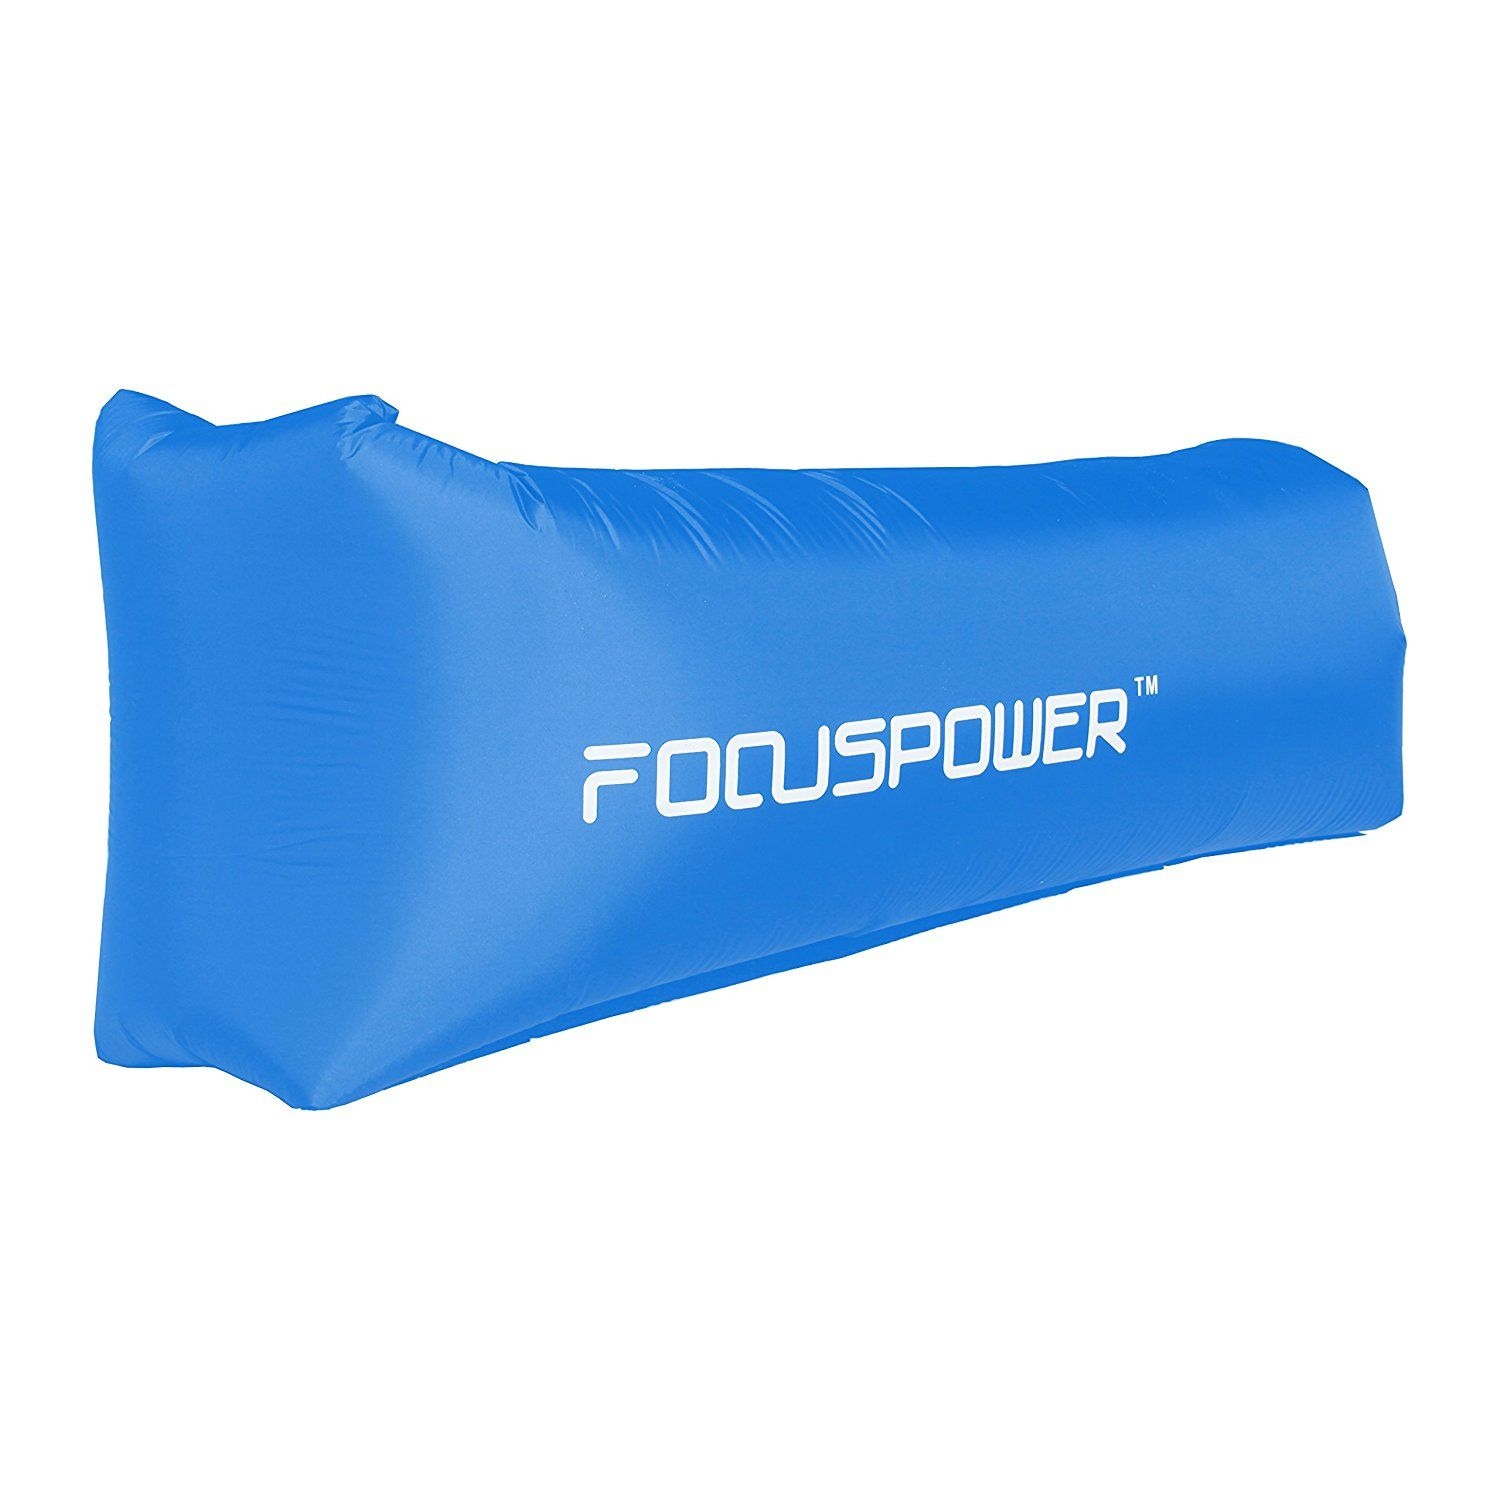 FOCUSPOWER Outdoor Infaltable Lounger Air Sleeping Bag Hiking